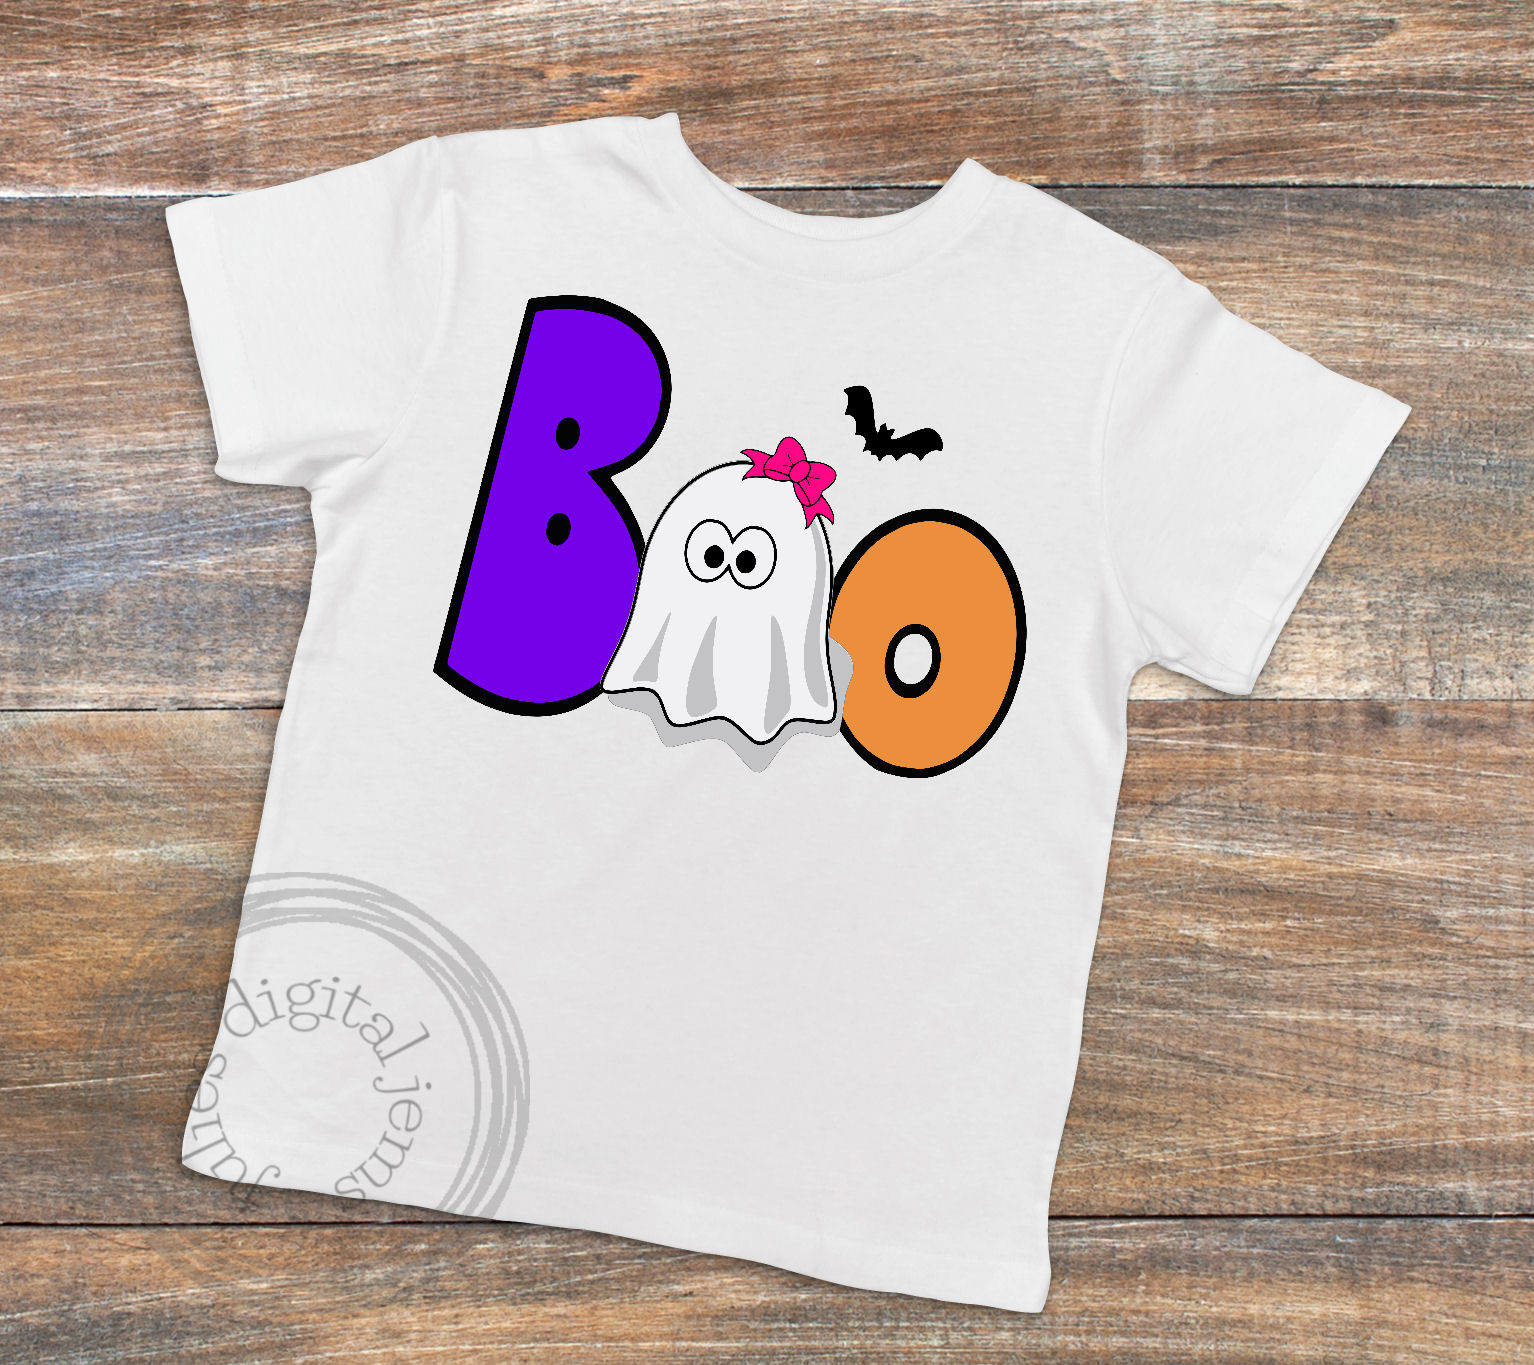 Boo girl ghost SVG, Halloween svg, by Julies digital jems example image 2